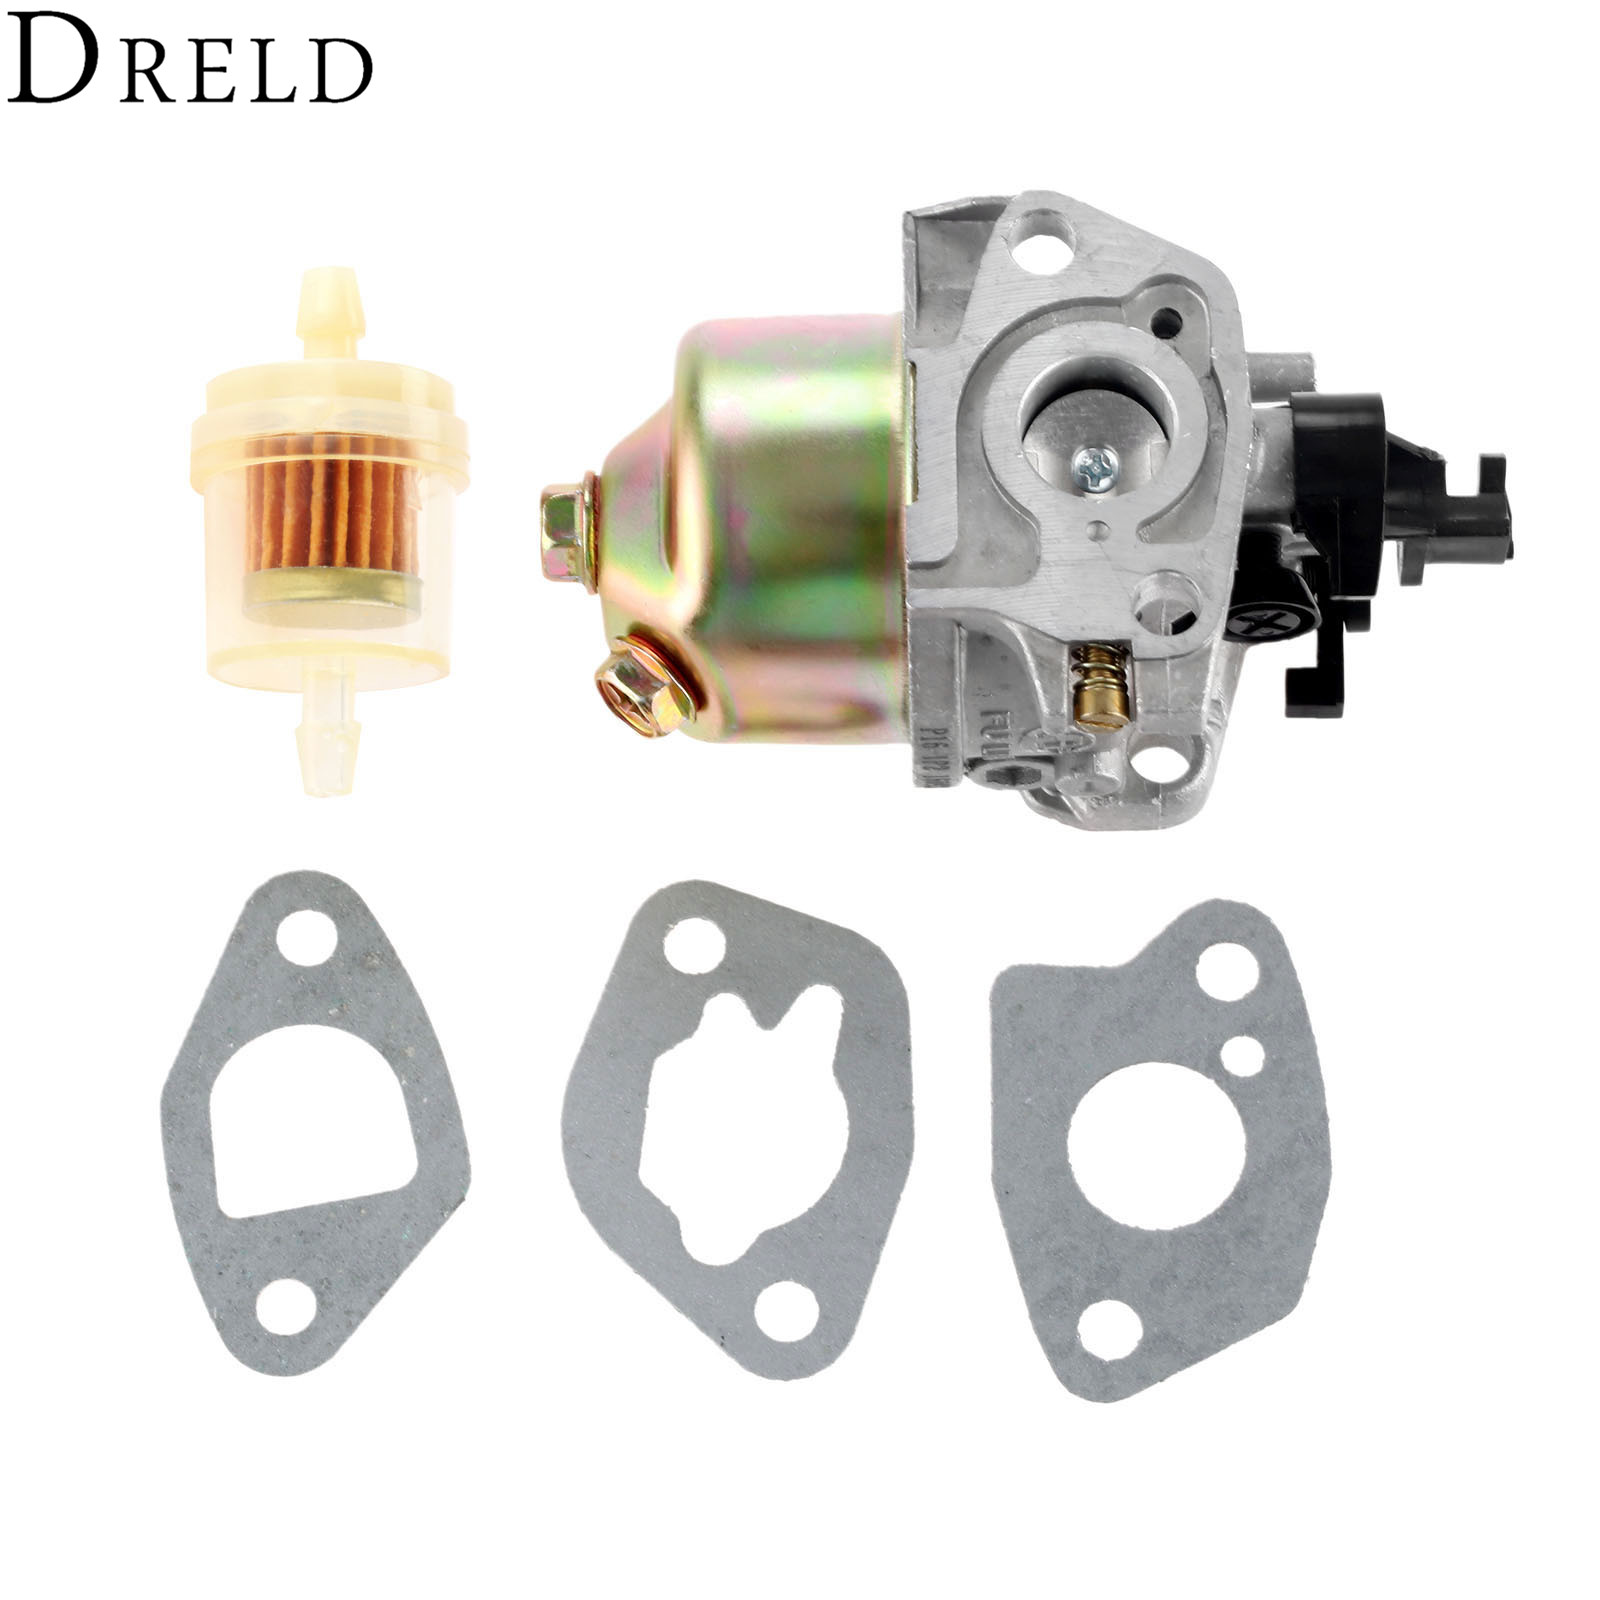 DRELD Carburetor with Carburetor Gasket Fuel Filter for MTD Cub Cadet Troy-Bilt Lawn Mower Engines # 951-10310 751-10310 все цены